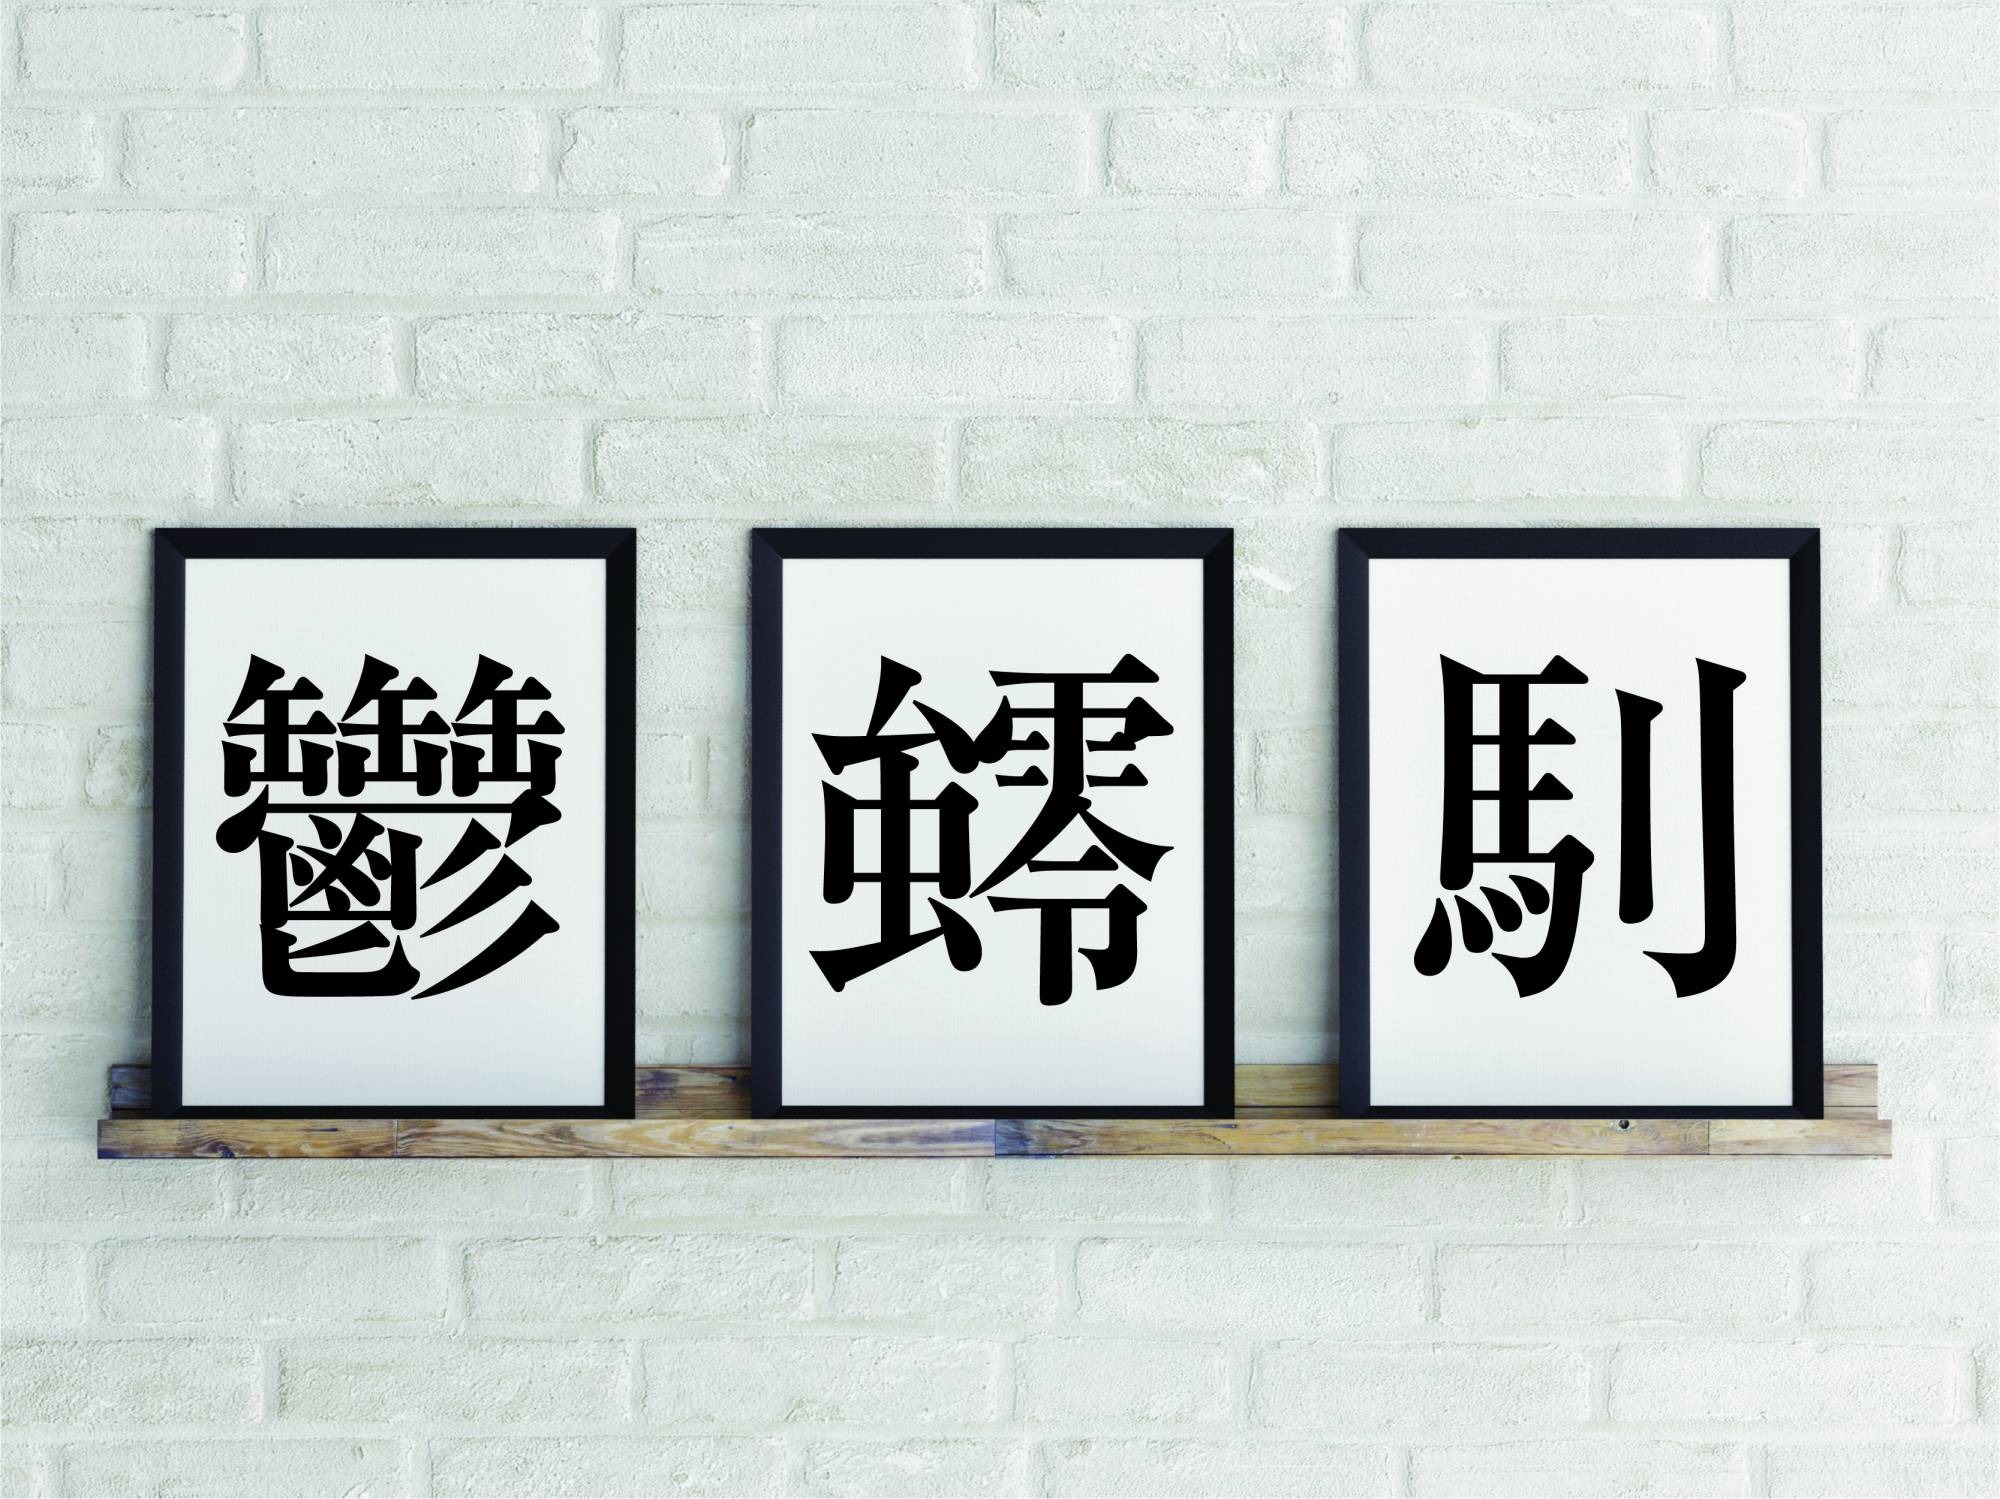 Radical recombinations: Capture the moment with created kanji